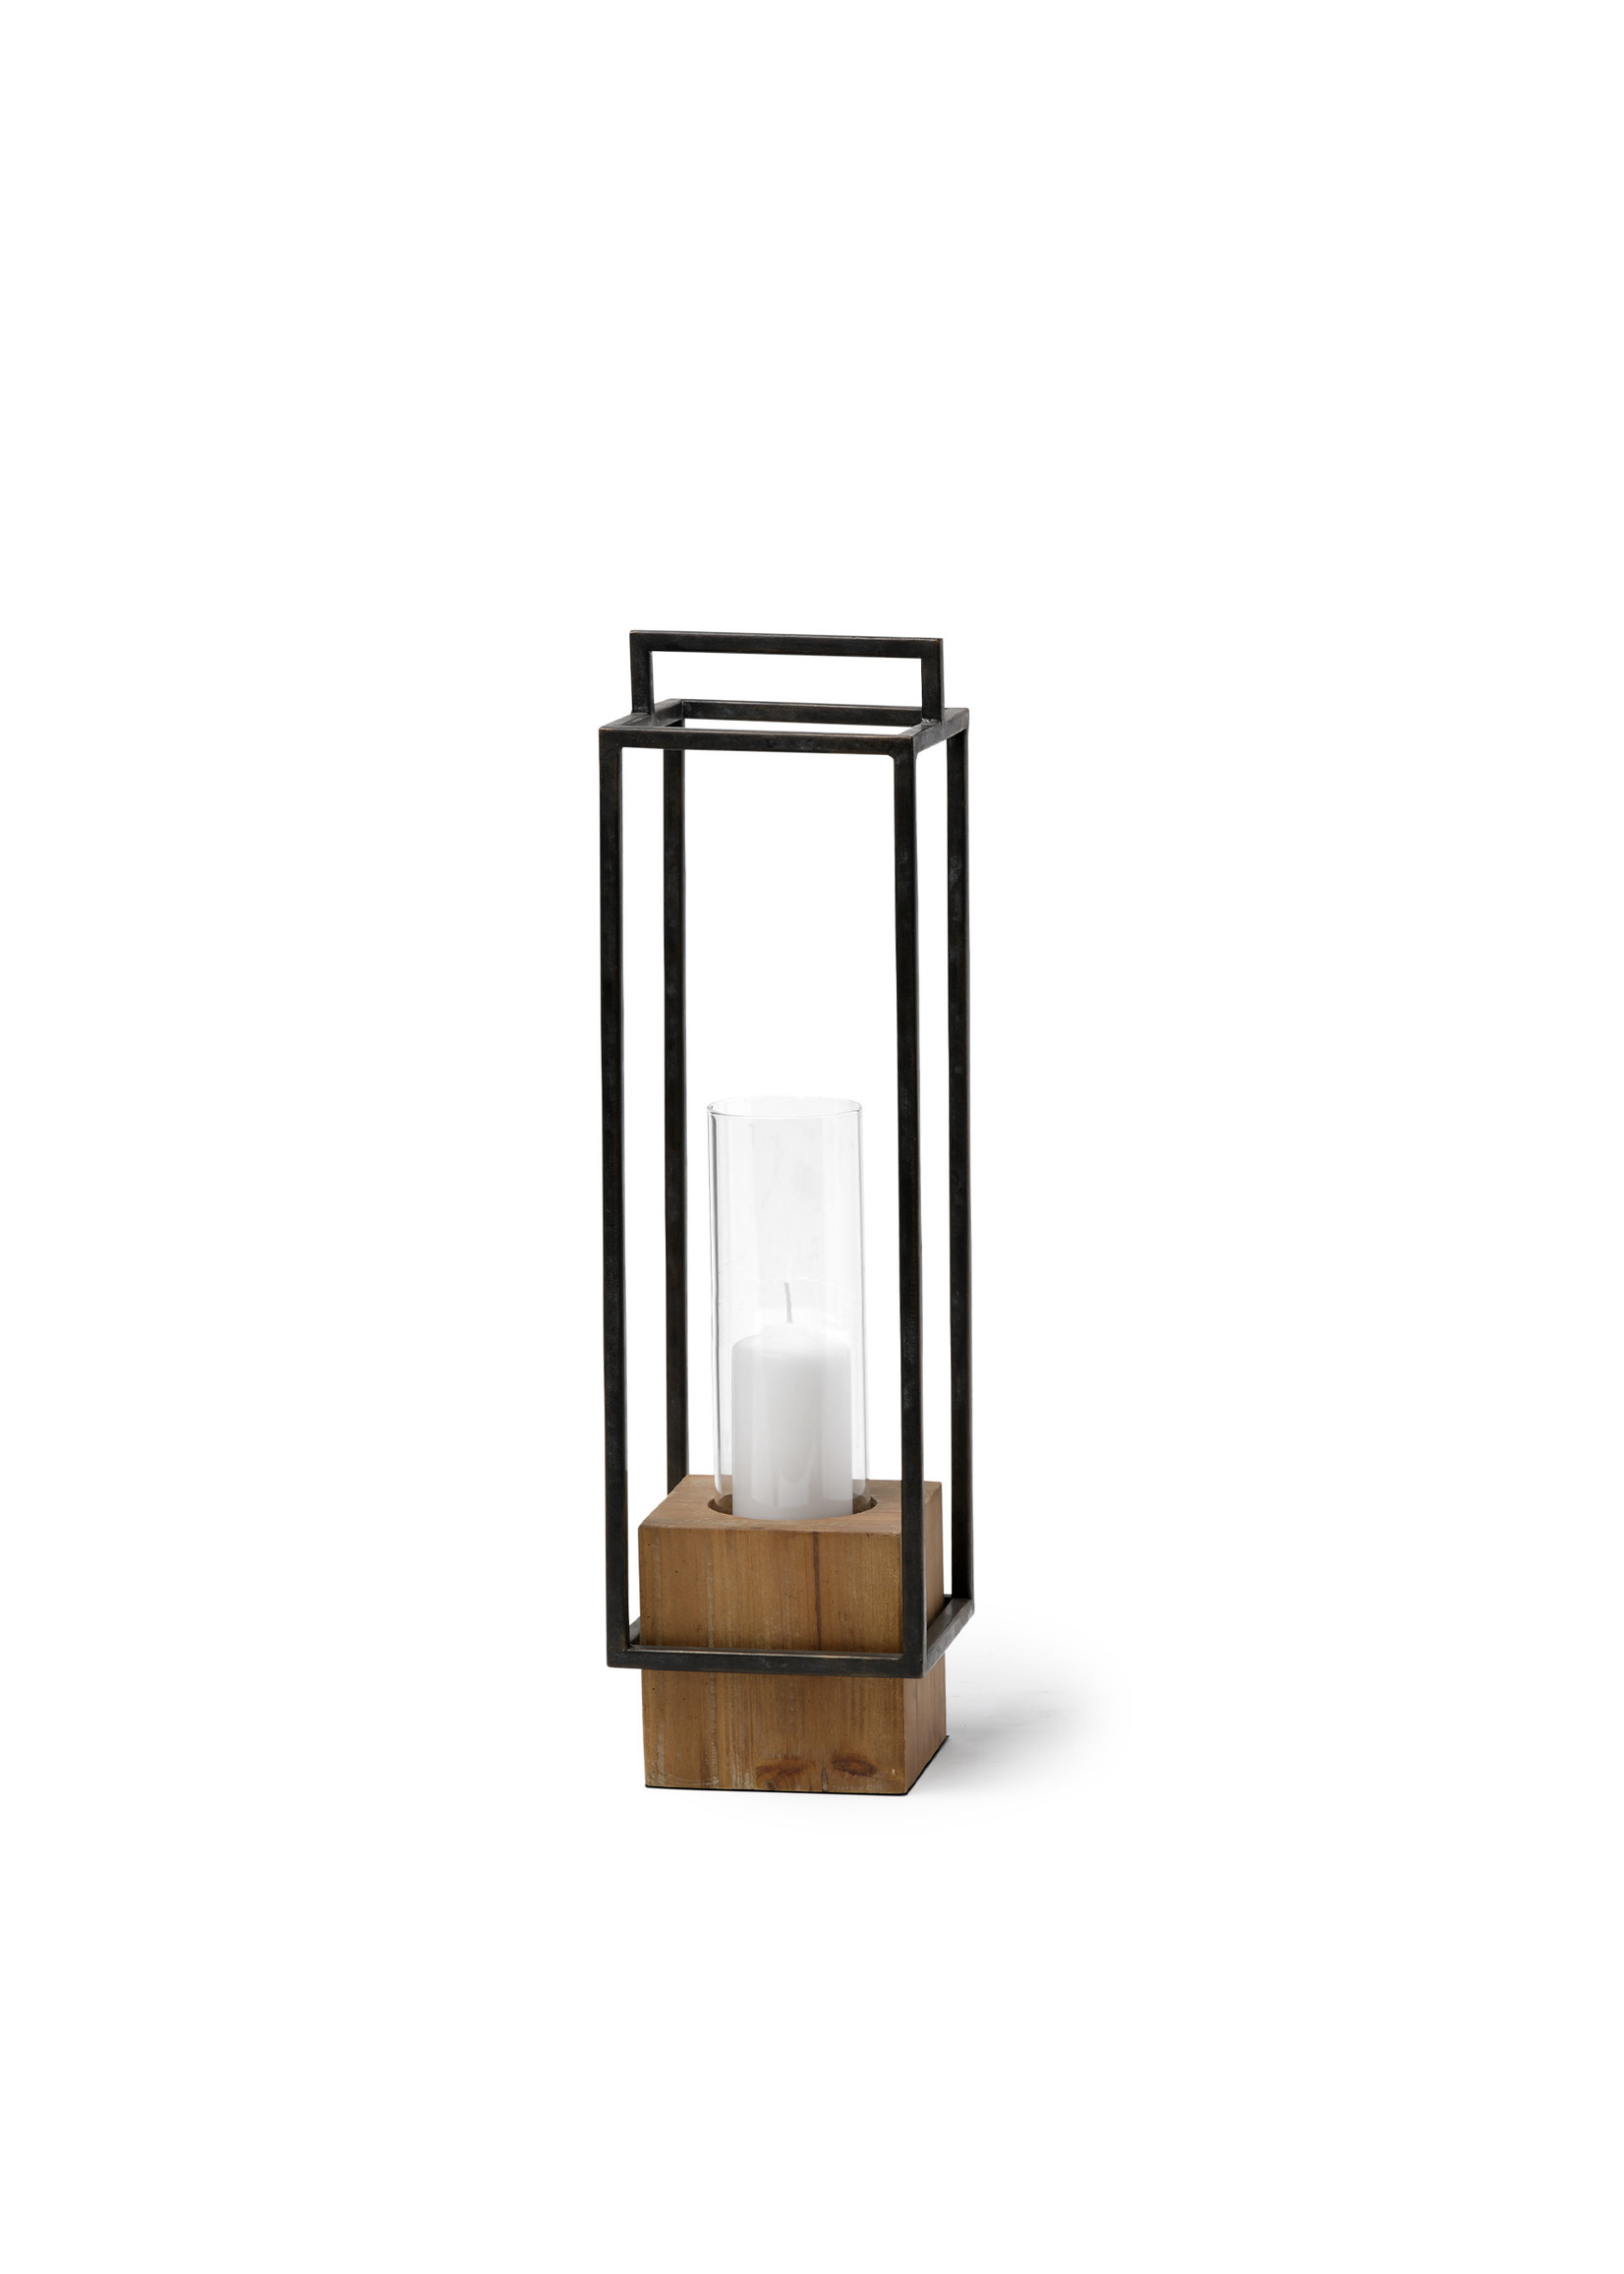 ORIONIS I CAGED CANDLE HOLDER